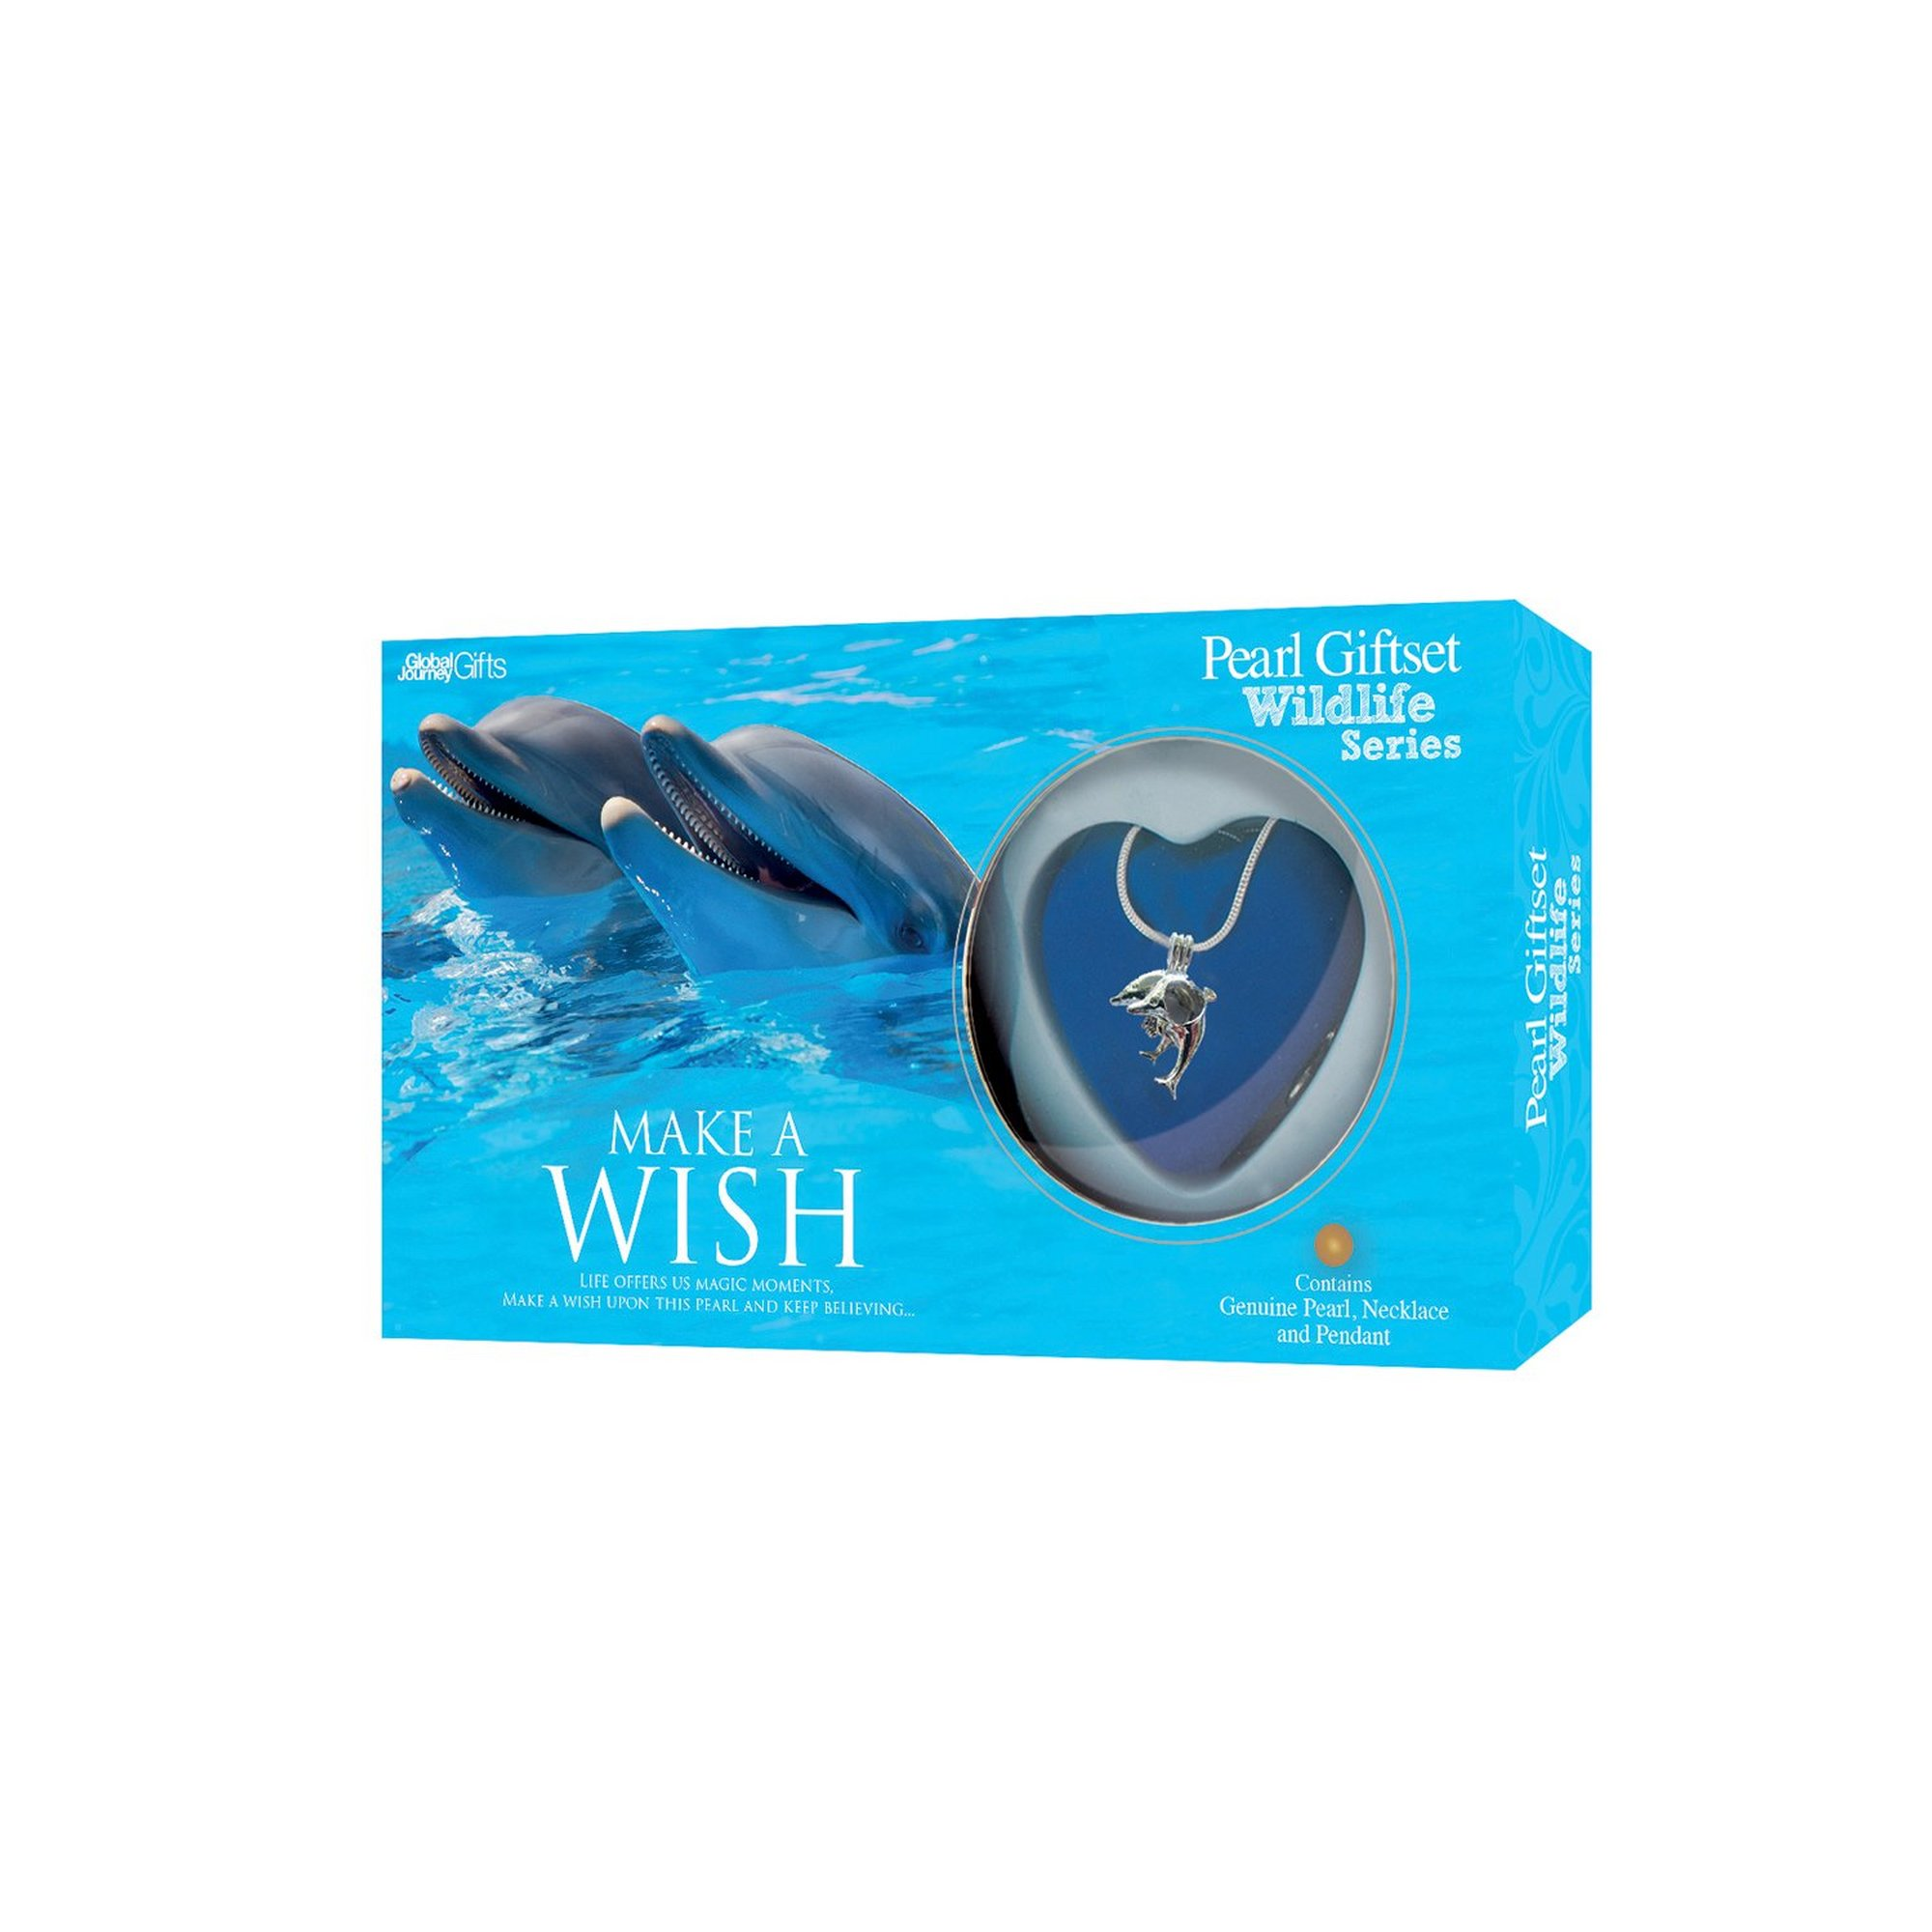 Image of Make A Wish Dolphin Pearl Pendant Gift Set